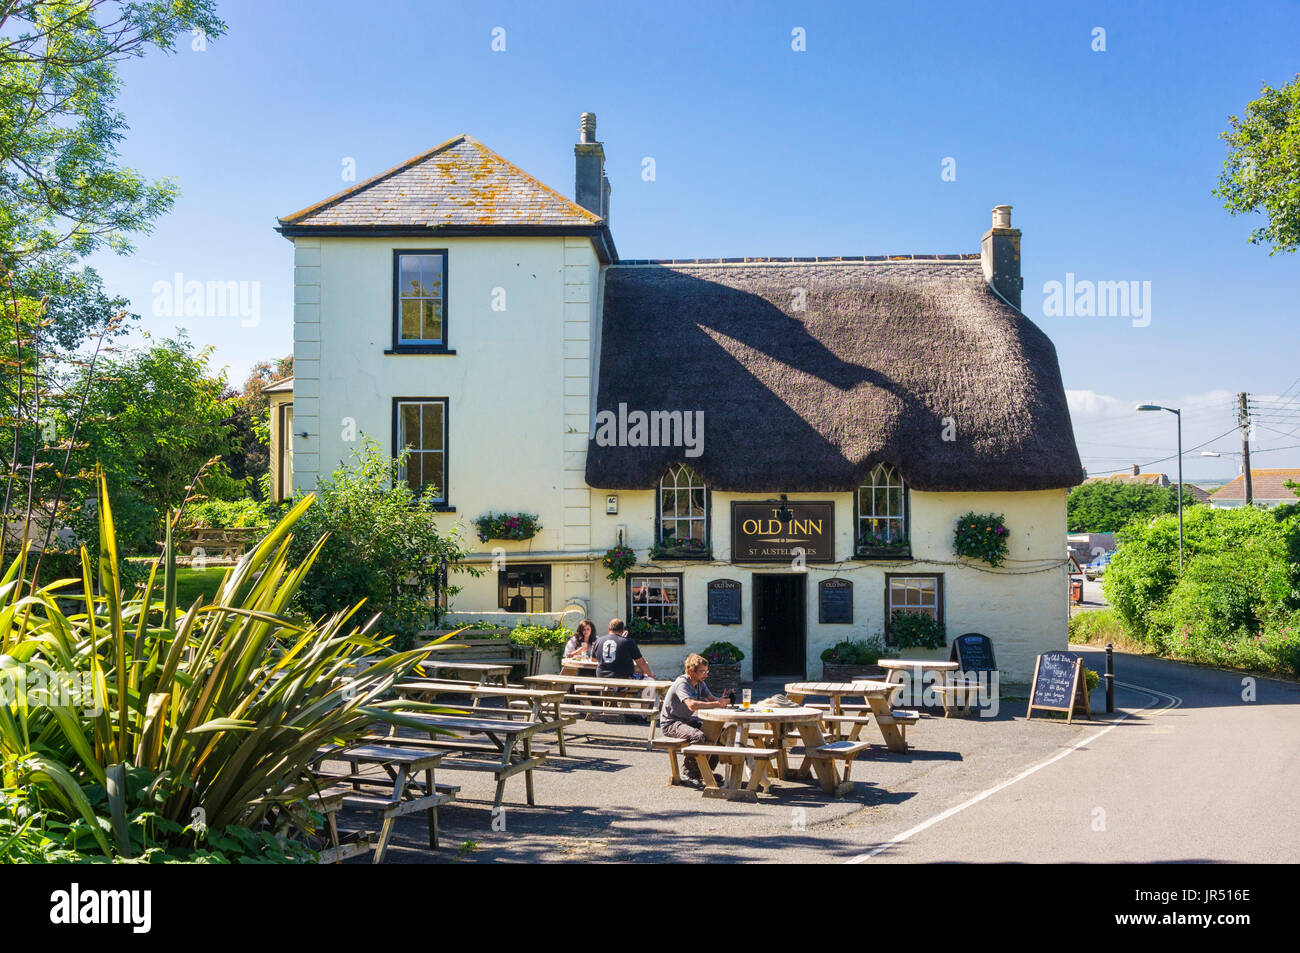 Old village pub in Mullion village, Cornwall, West country, England, UK in summer with beer garden - Stock Image